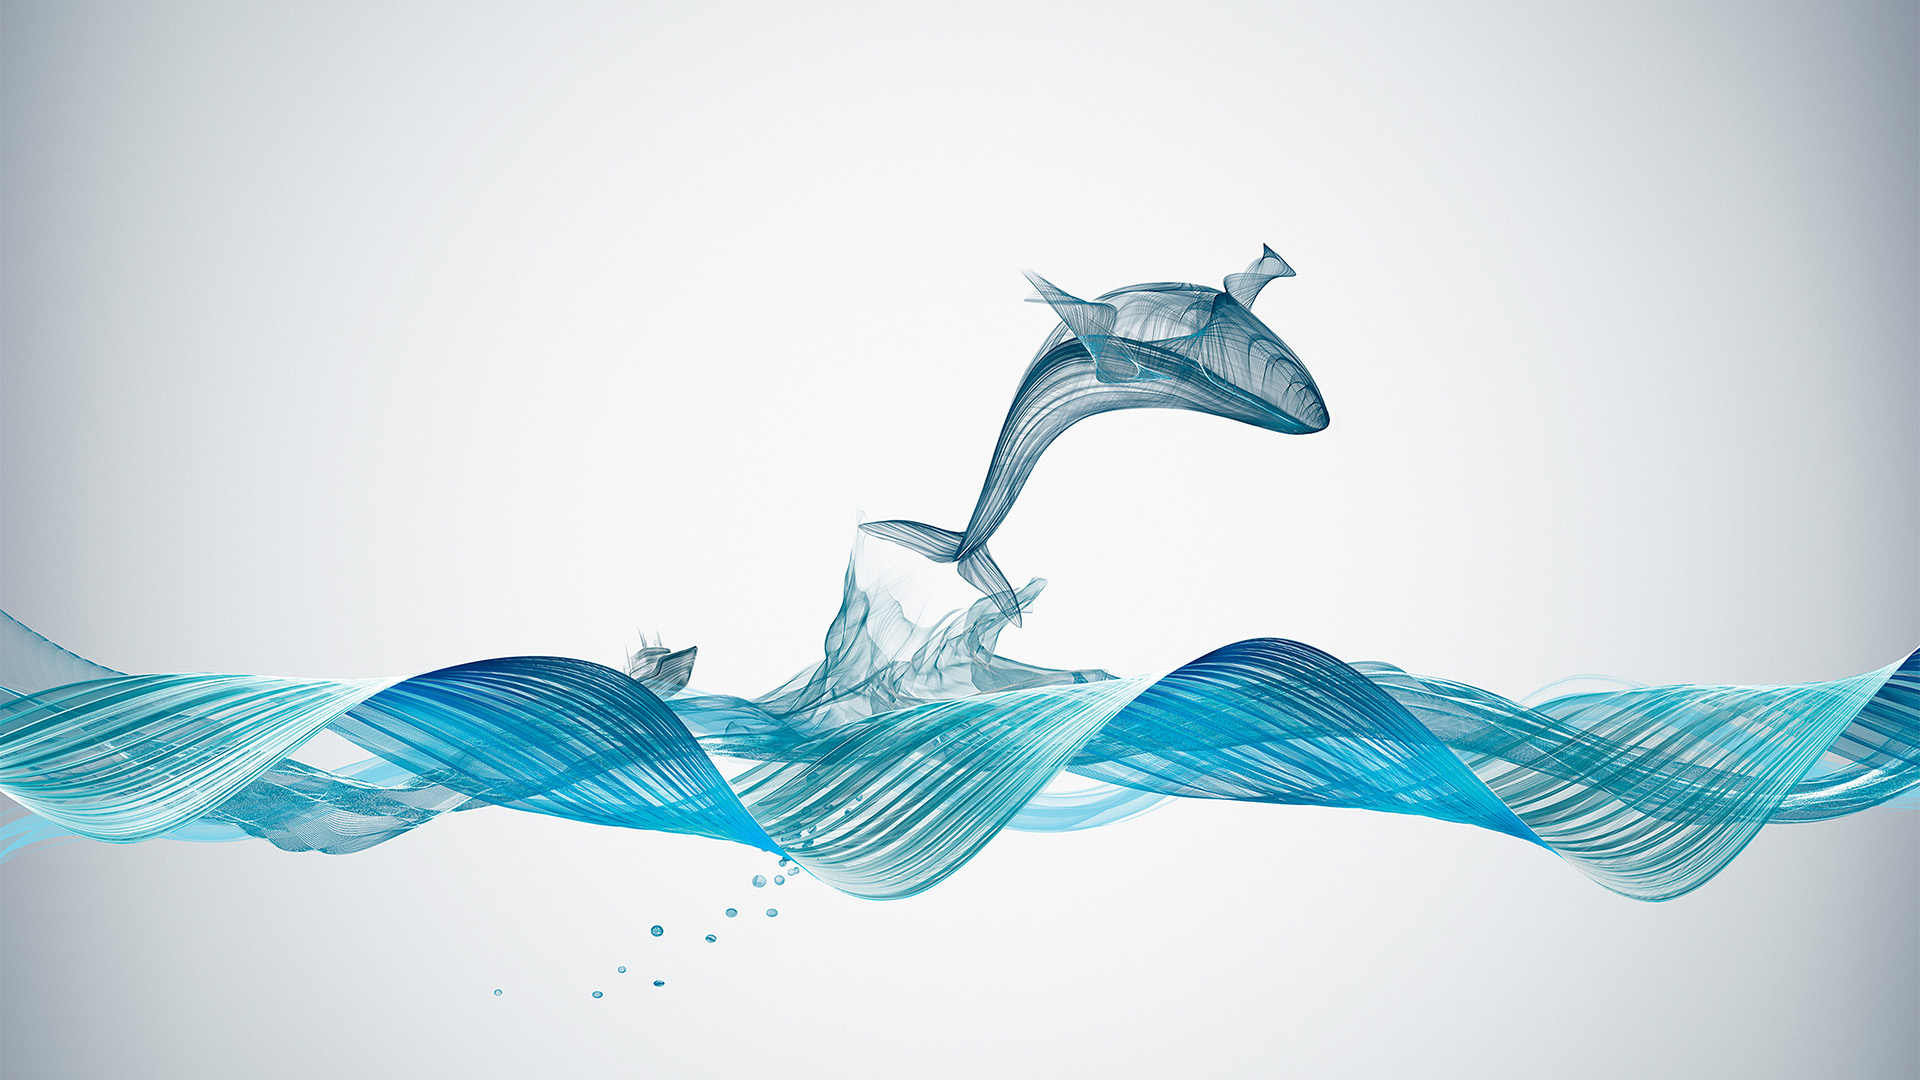 3d Graphic Wallpaper Hd Bd84 Fishing Boat Whale Wave Line Art Illustration Animal